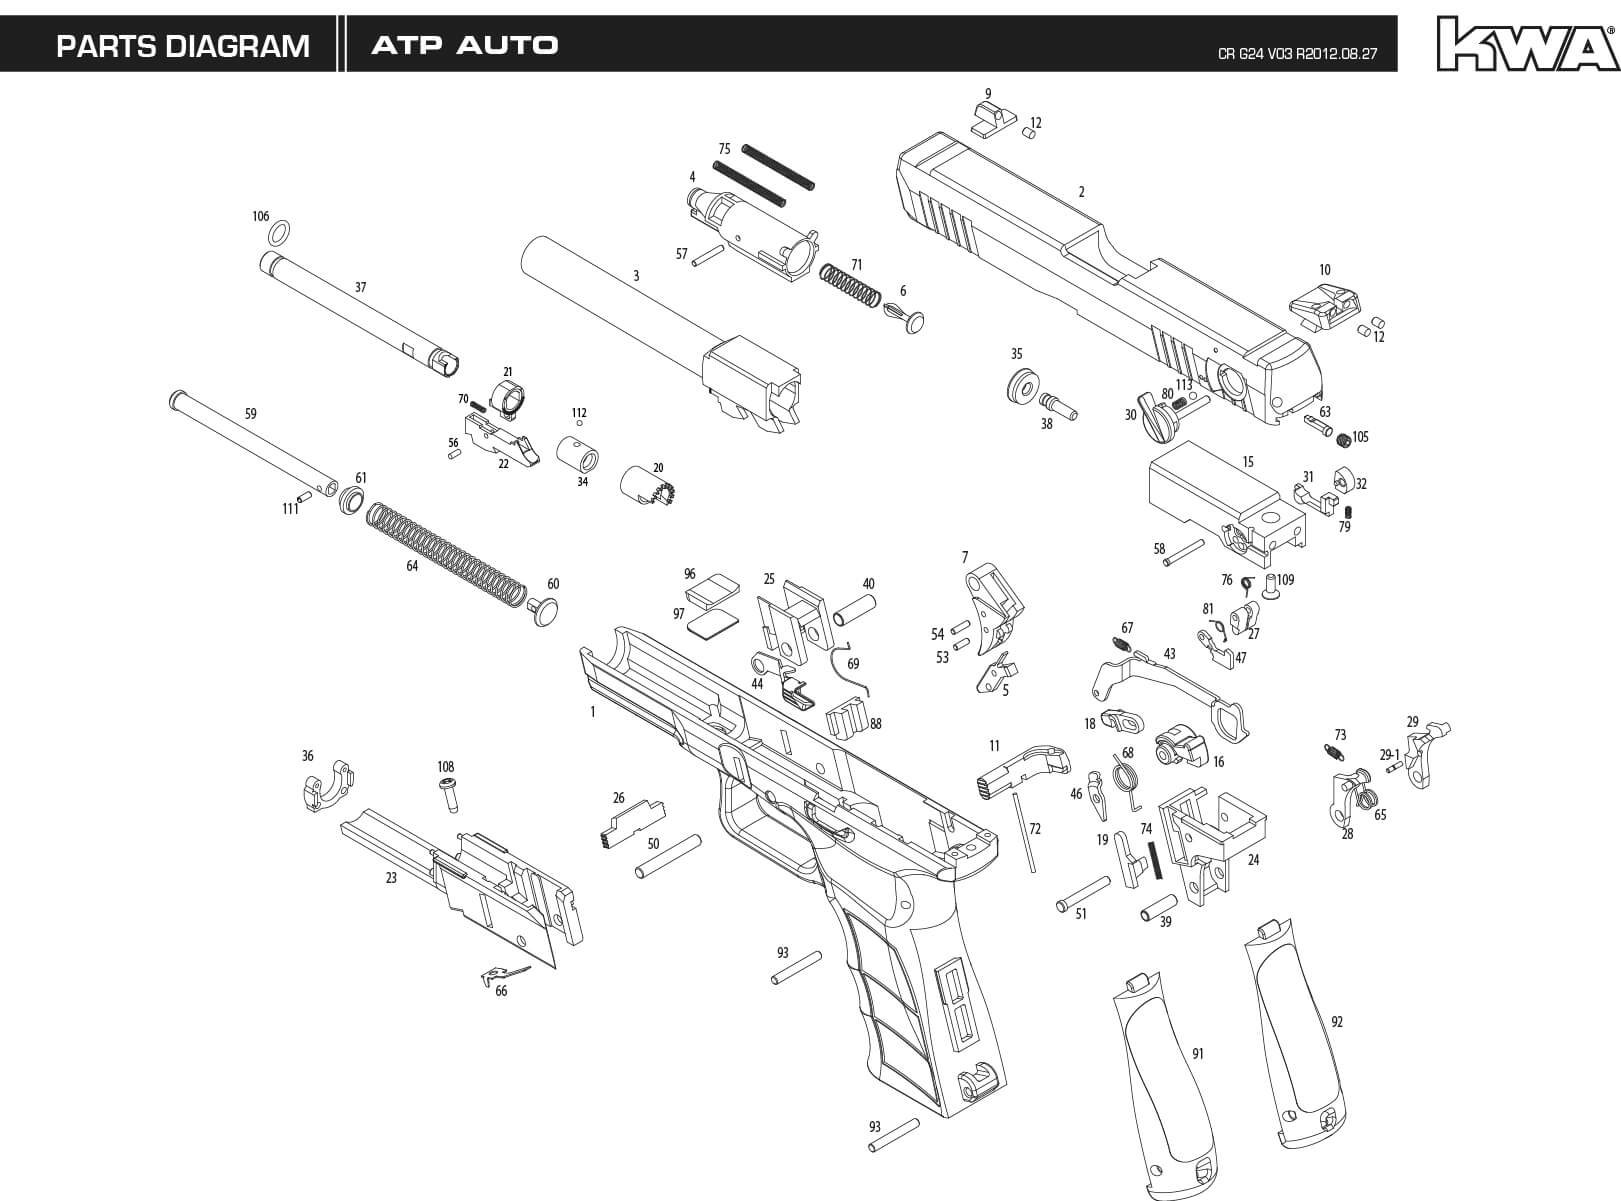 kwa atp auto disassembly help   airsoft